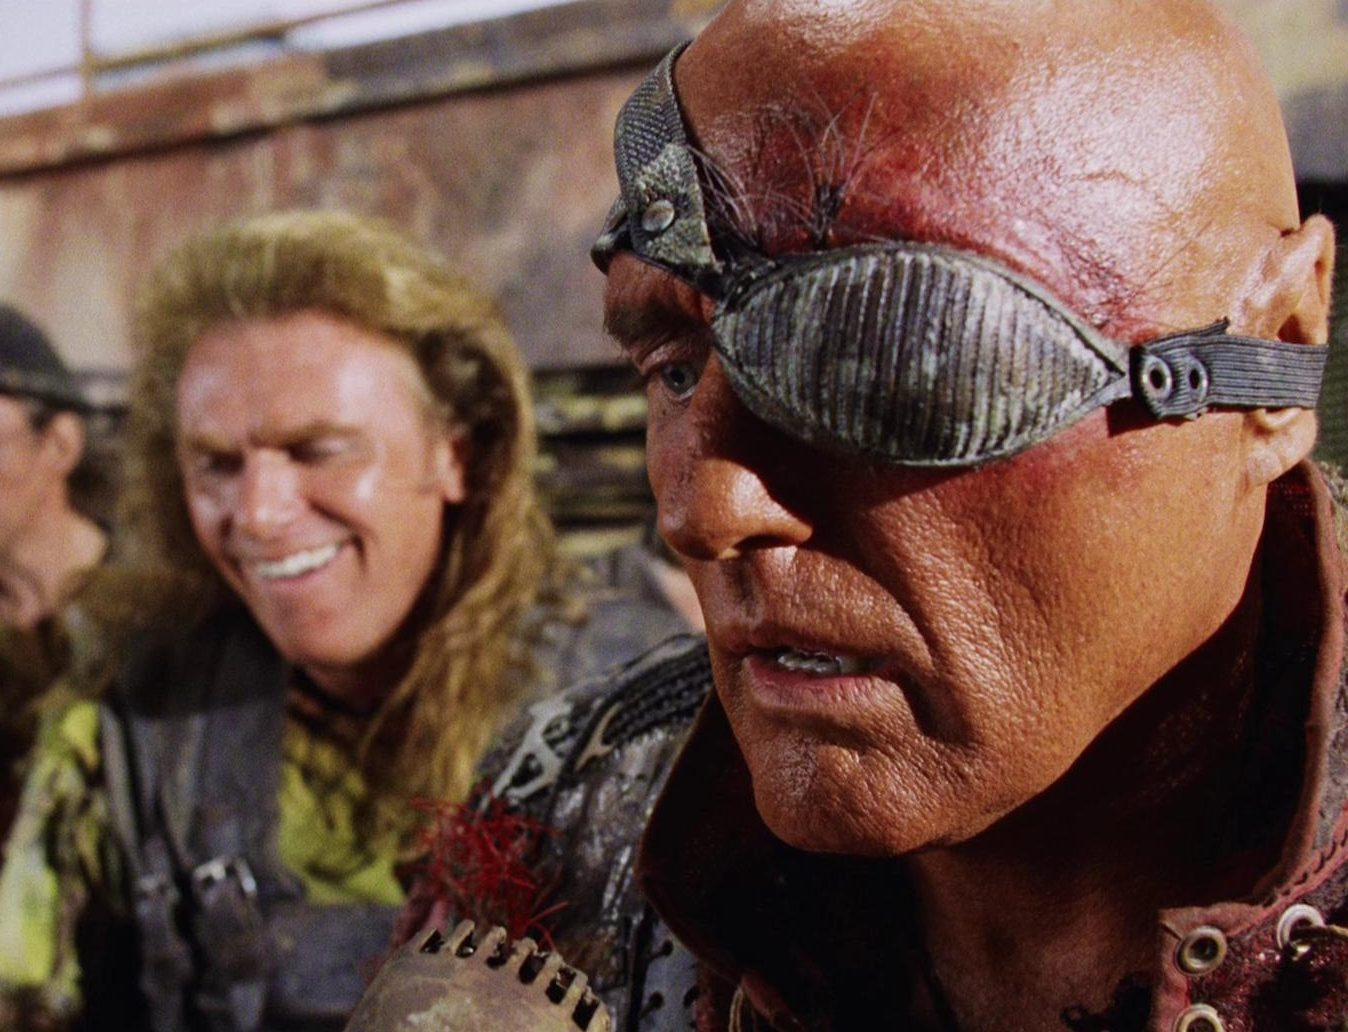 Waterworld Kevin Costner 4K UHD Blu ray Review 2 e1612872920902 40 Things You Never Knew About The Disastrous Waterworld